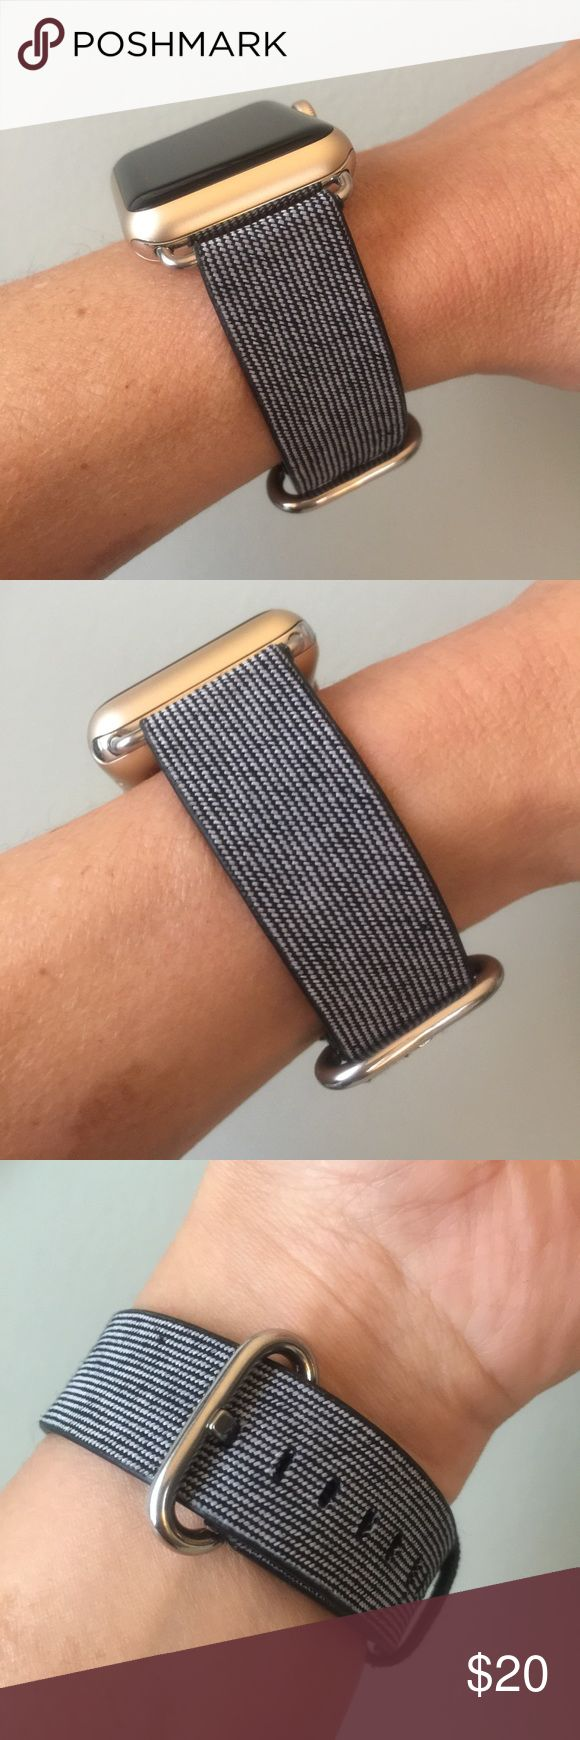 Dark Blue with gray stripes Apple Watch band ⌚️ Dark Blue with gray stripes Apple Watch band with silver hardware ⌚️  High quality canvas nylon band.  It comes with 38mm or 42mm adapters. Please select your size when you purchase. The adapters fit the Apple Watch I, 2 & Sport.   I have other band colors, hardware colors and styles in my closet. Check them out!   I offer 15% off if you buy two or more! Please add BOTH items to the bundle for the discount to automatically apply.    Only the…